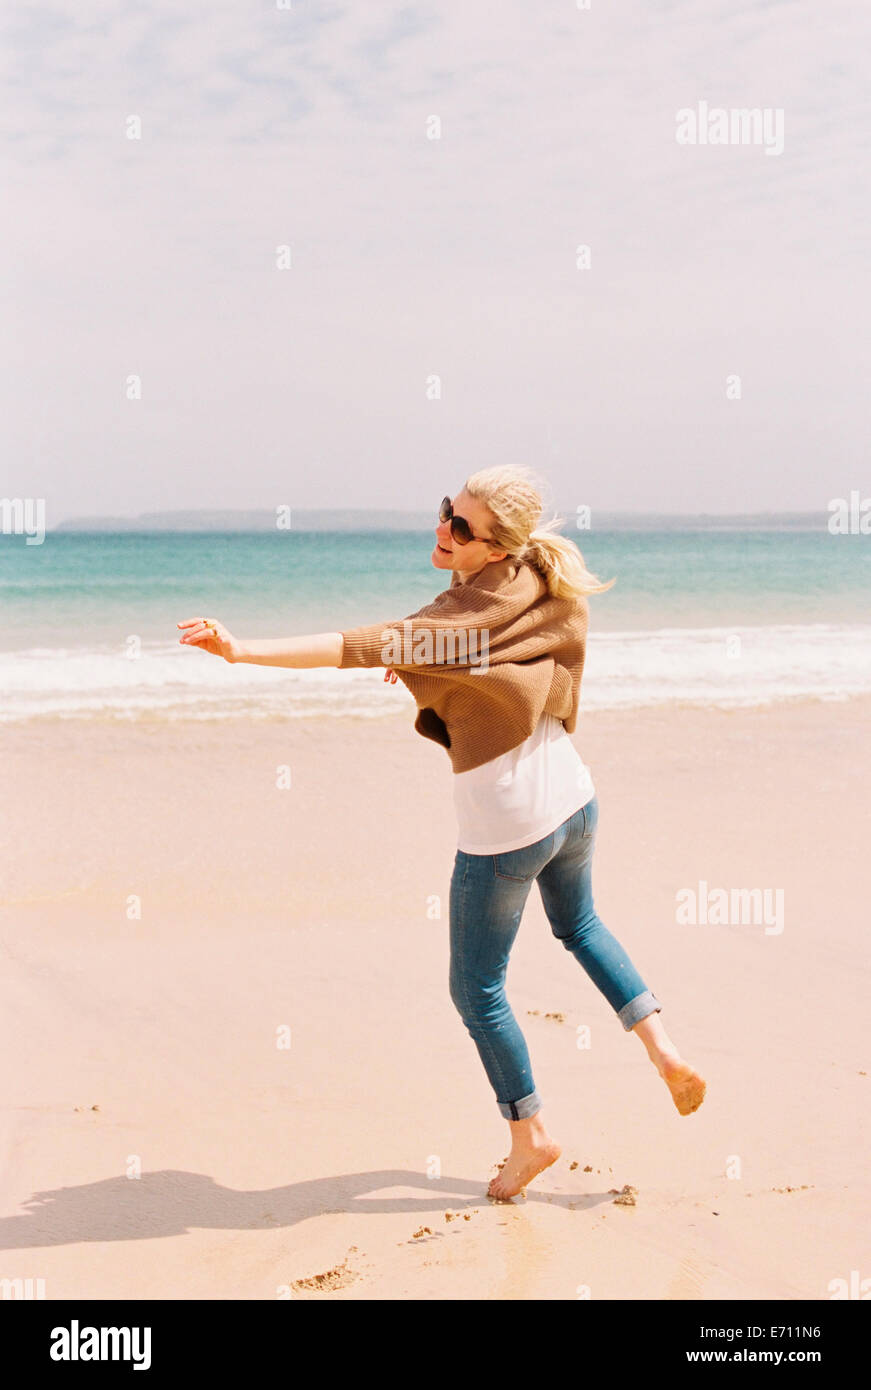 A woman dancing barefoot on the sand, expressing herself through movements. - Stock Image